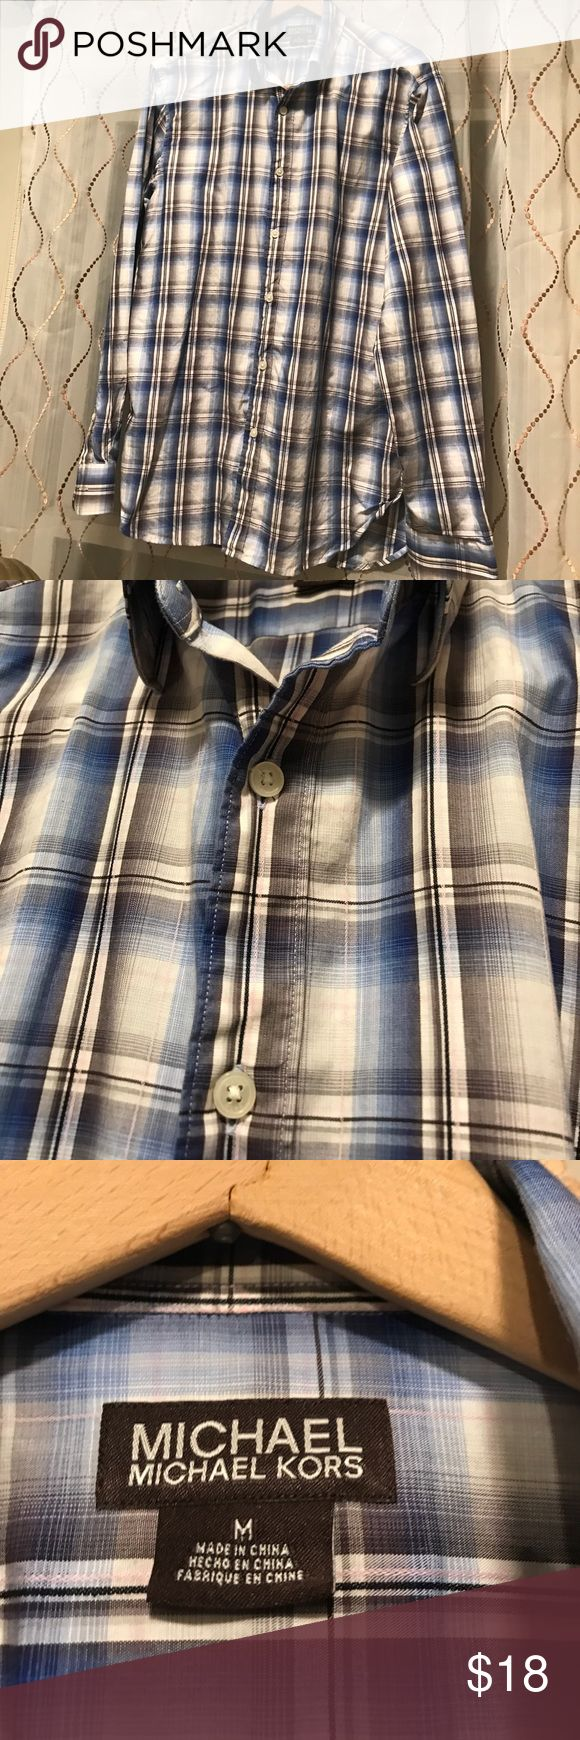 Michael Kors mens shirt Excellent condition, just needs an ironing! Collar has stays. Michael Kors Shirts Casual Button Down Shirts